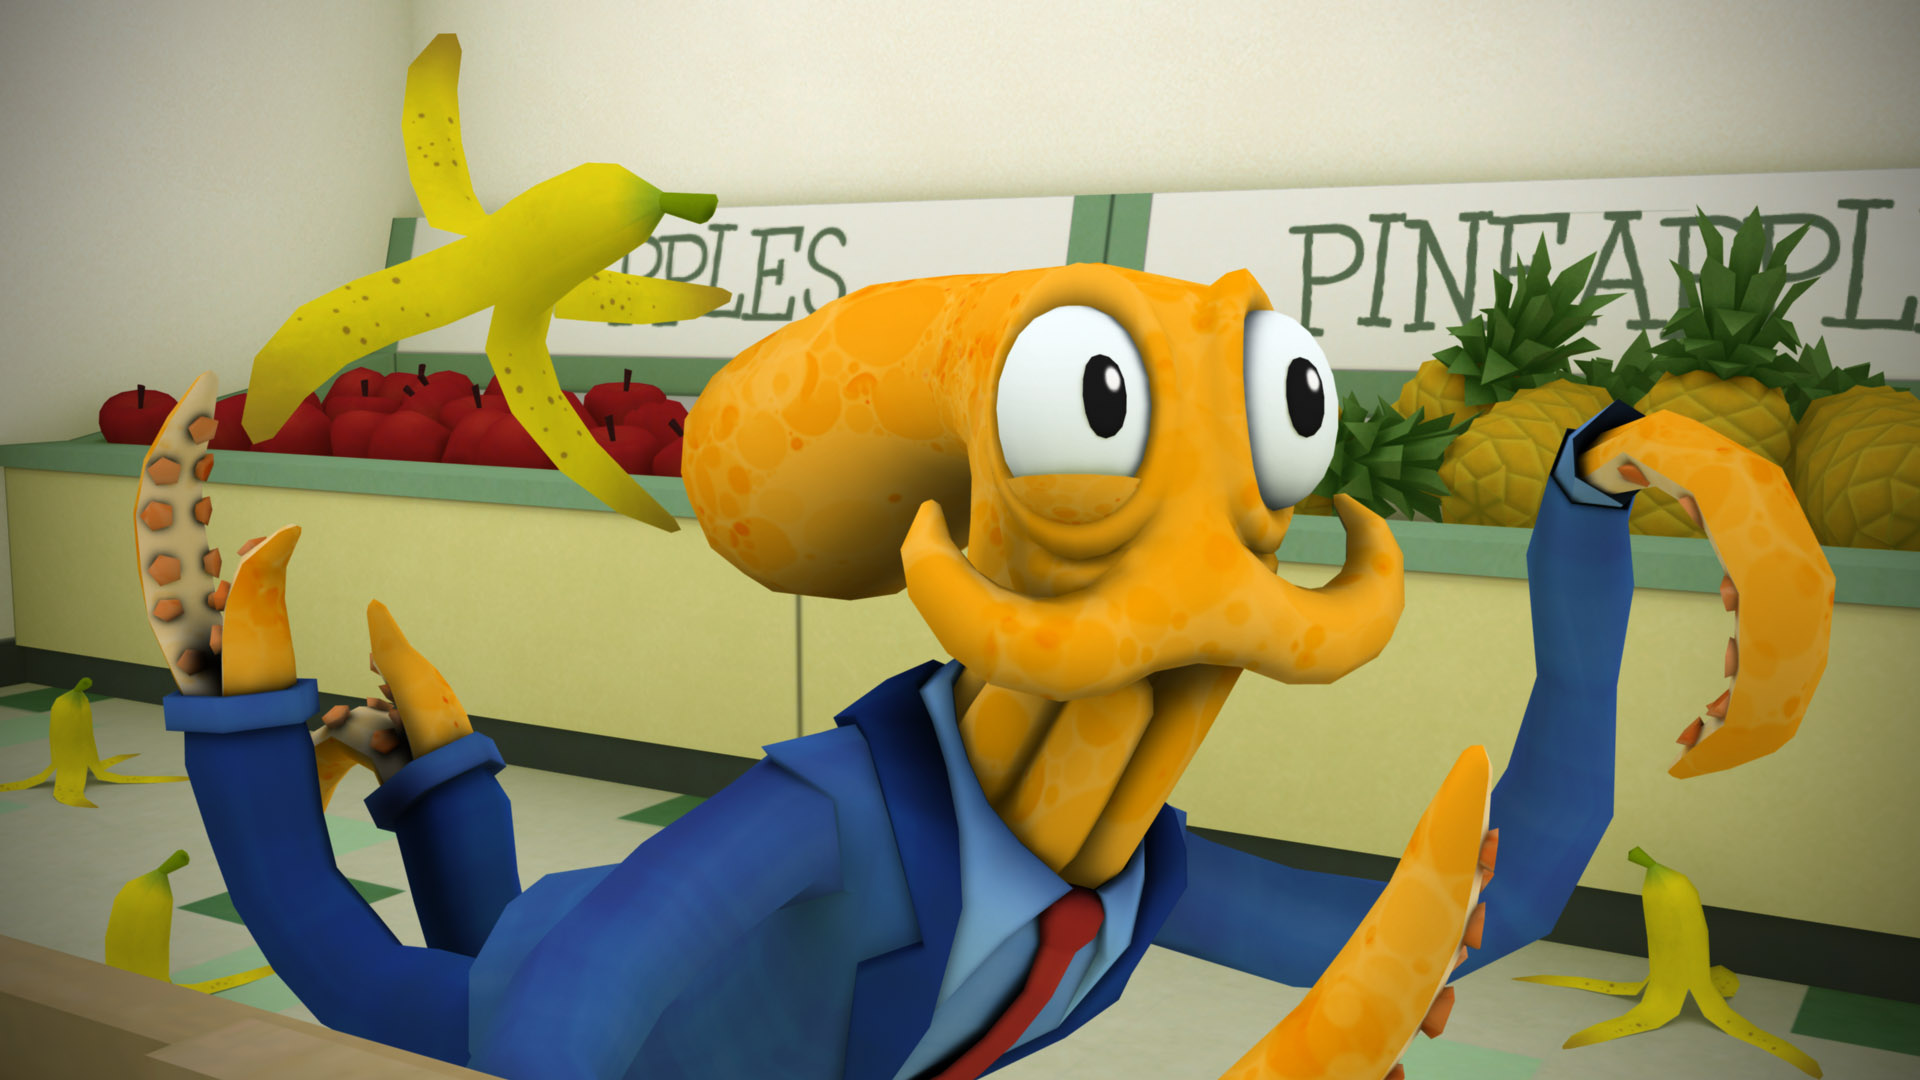 Octodad: Dadliest Catch v1.0.15 Immagini